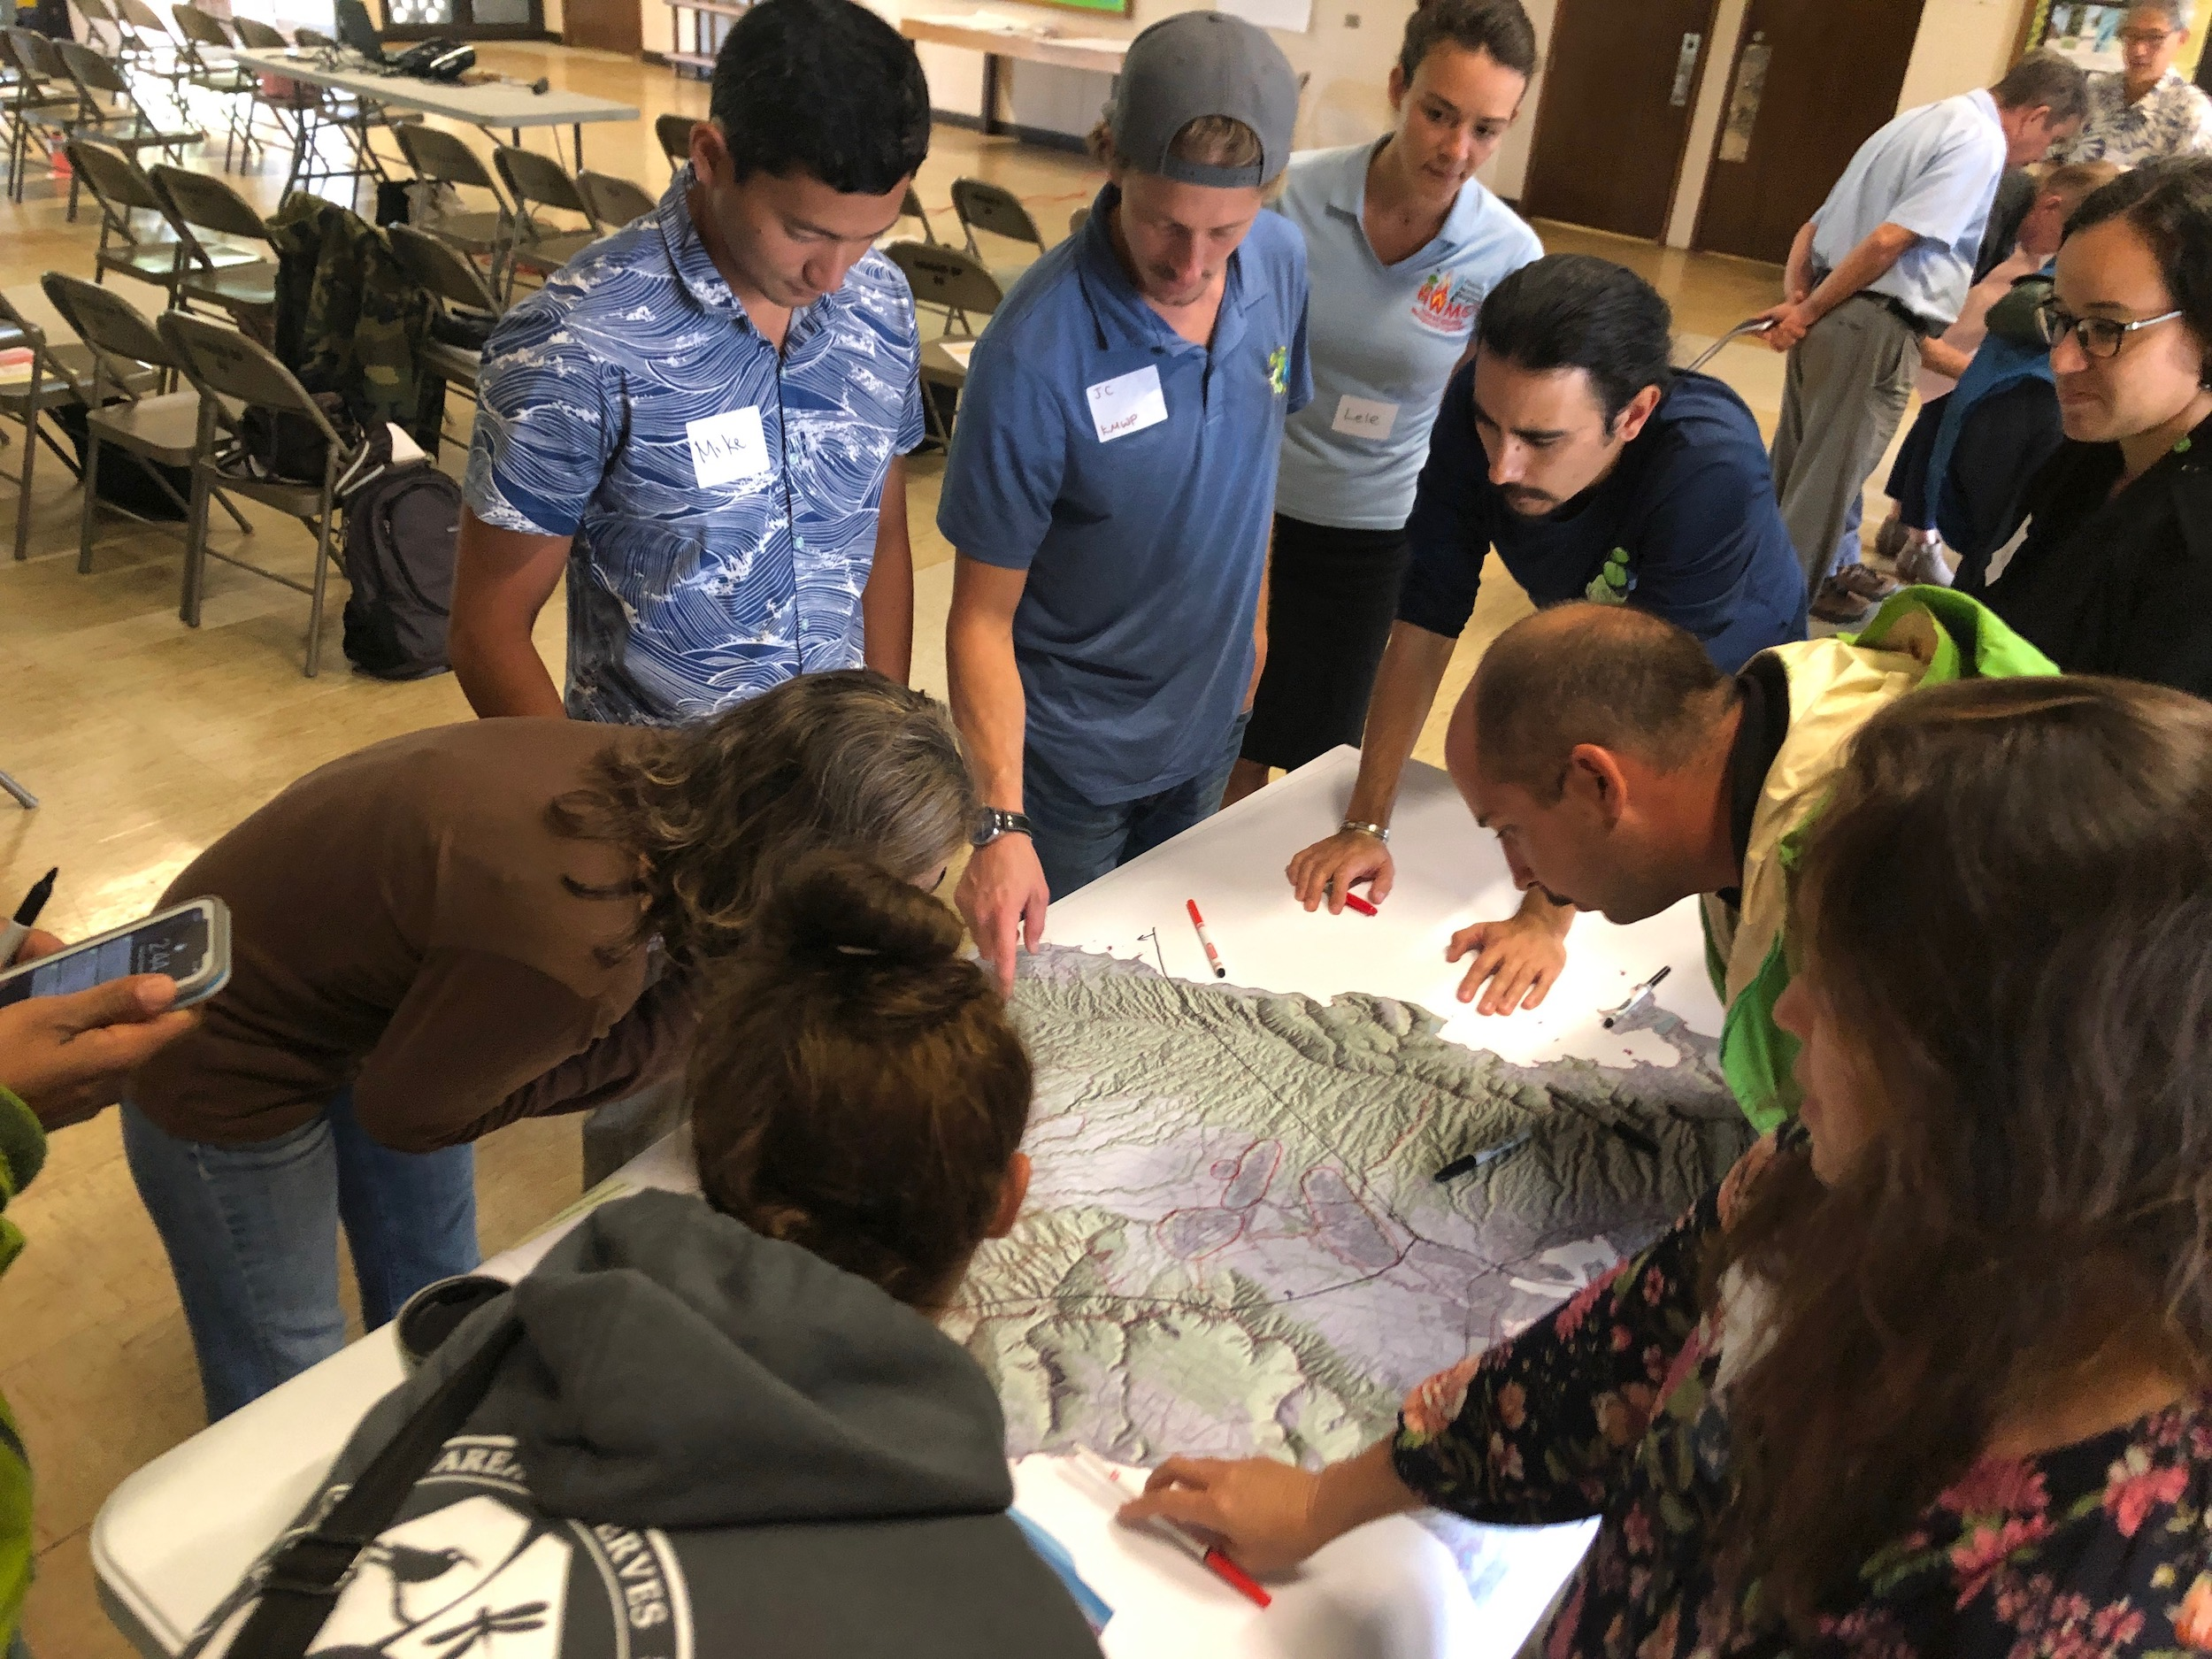 Oahu Vegetative Fuels Management Collaborative Action Planning Workshop_2_19_2019_11.jpg